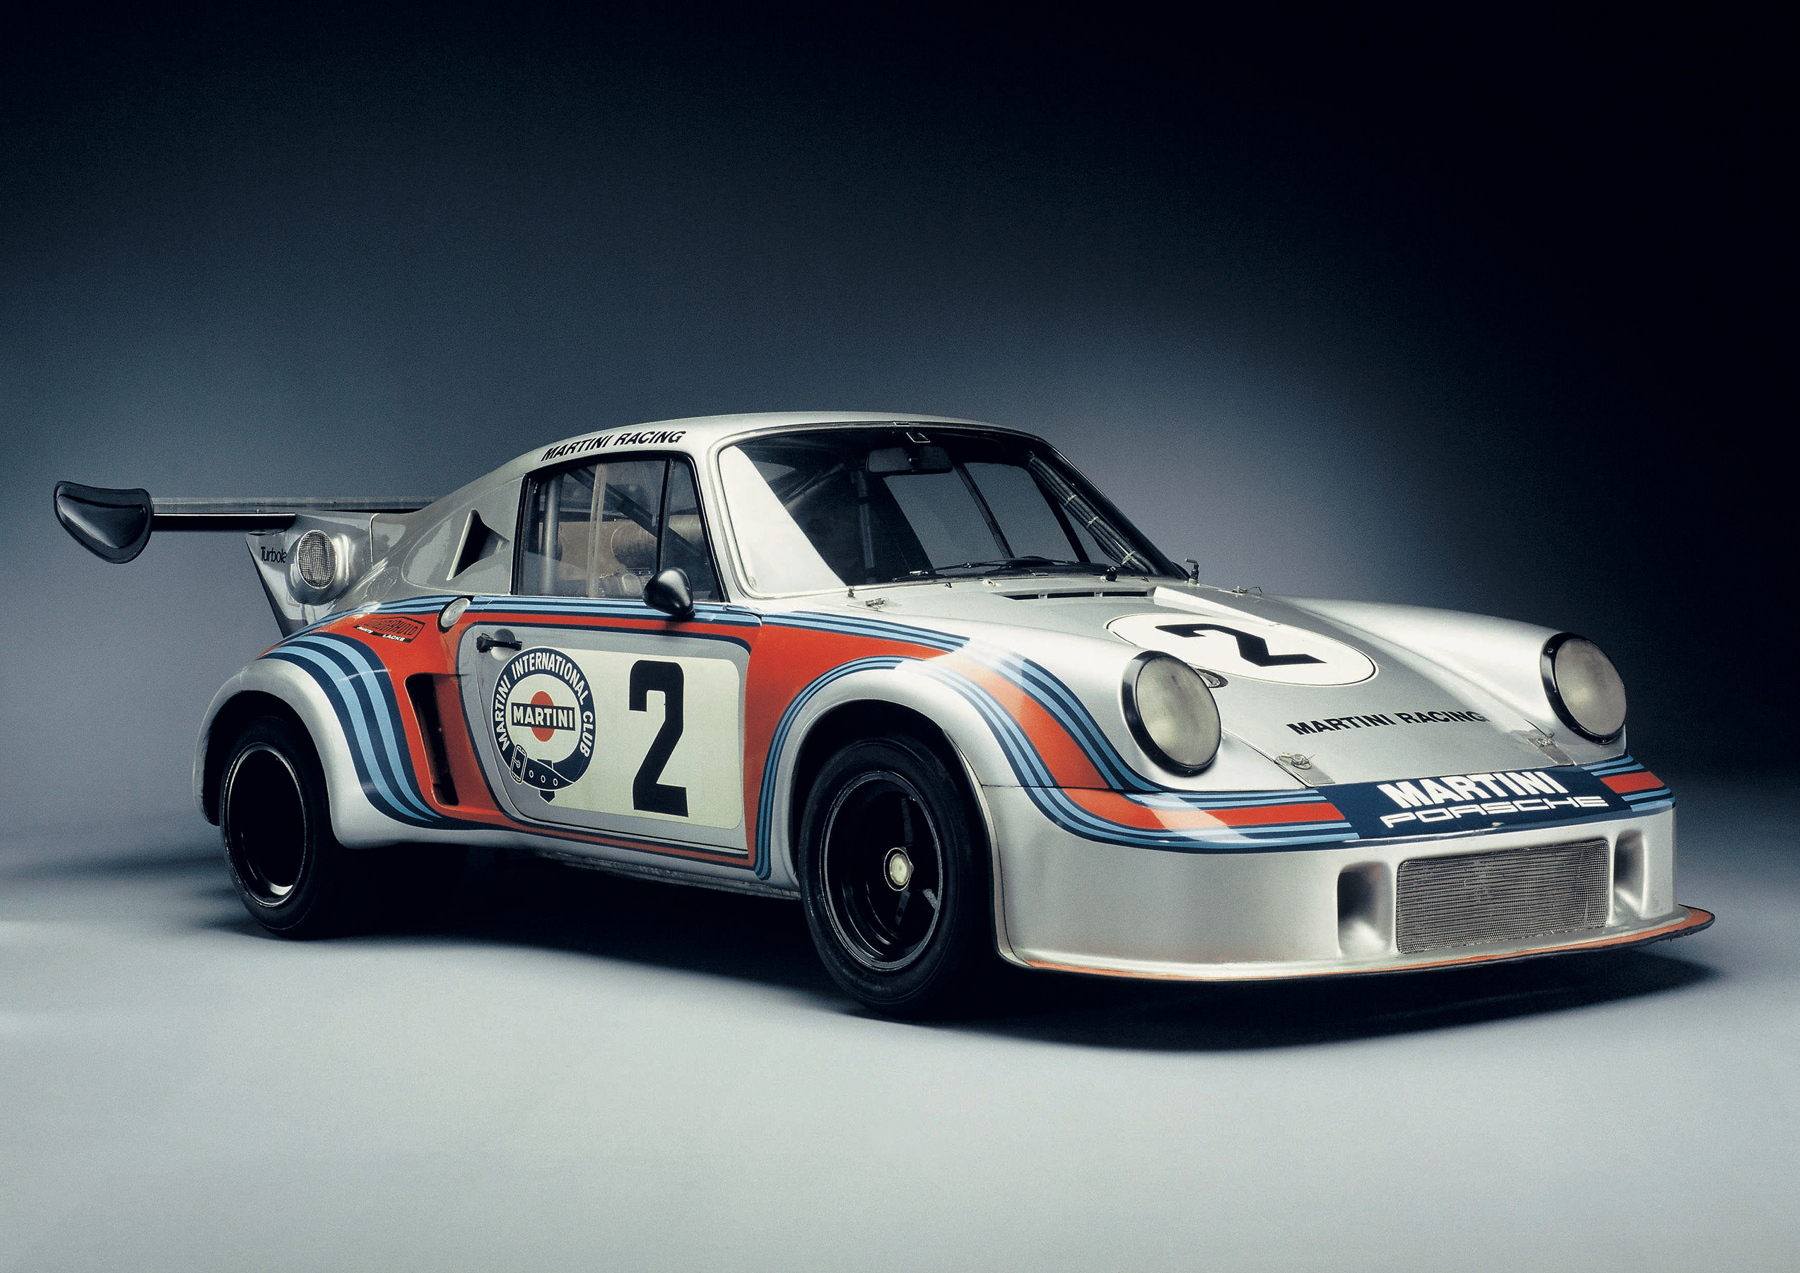 Porsche-911-Carrera-RSR-Turbo-2.1.jpg